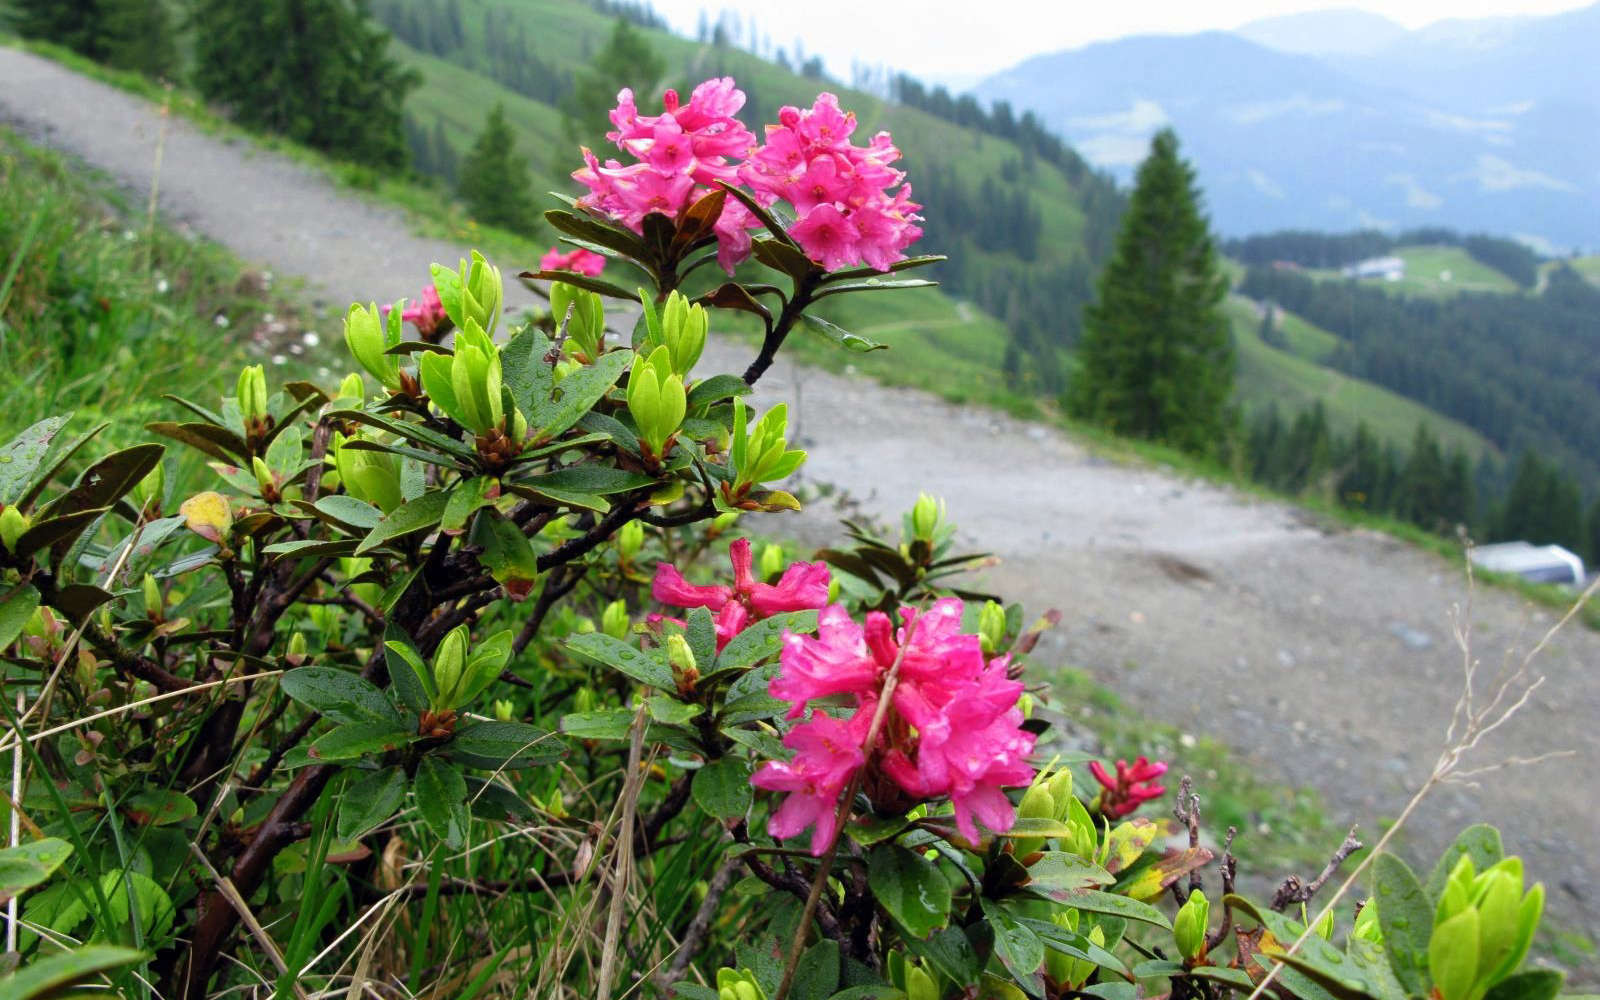 Rhododendron ferrugineux (Crédits : Col Ford and Natasha de Vere - Flickr)